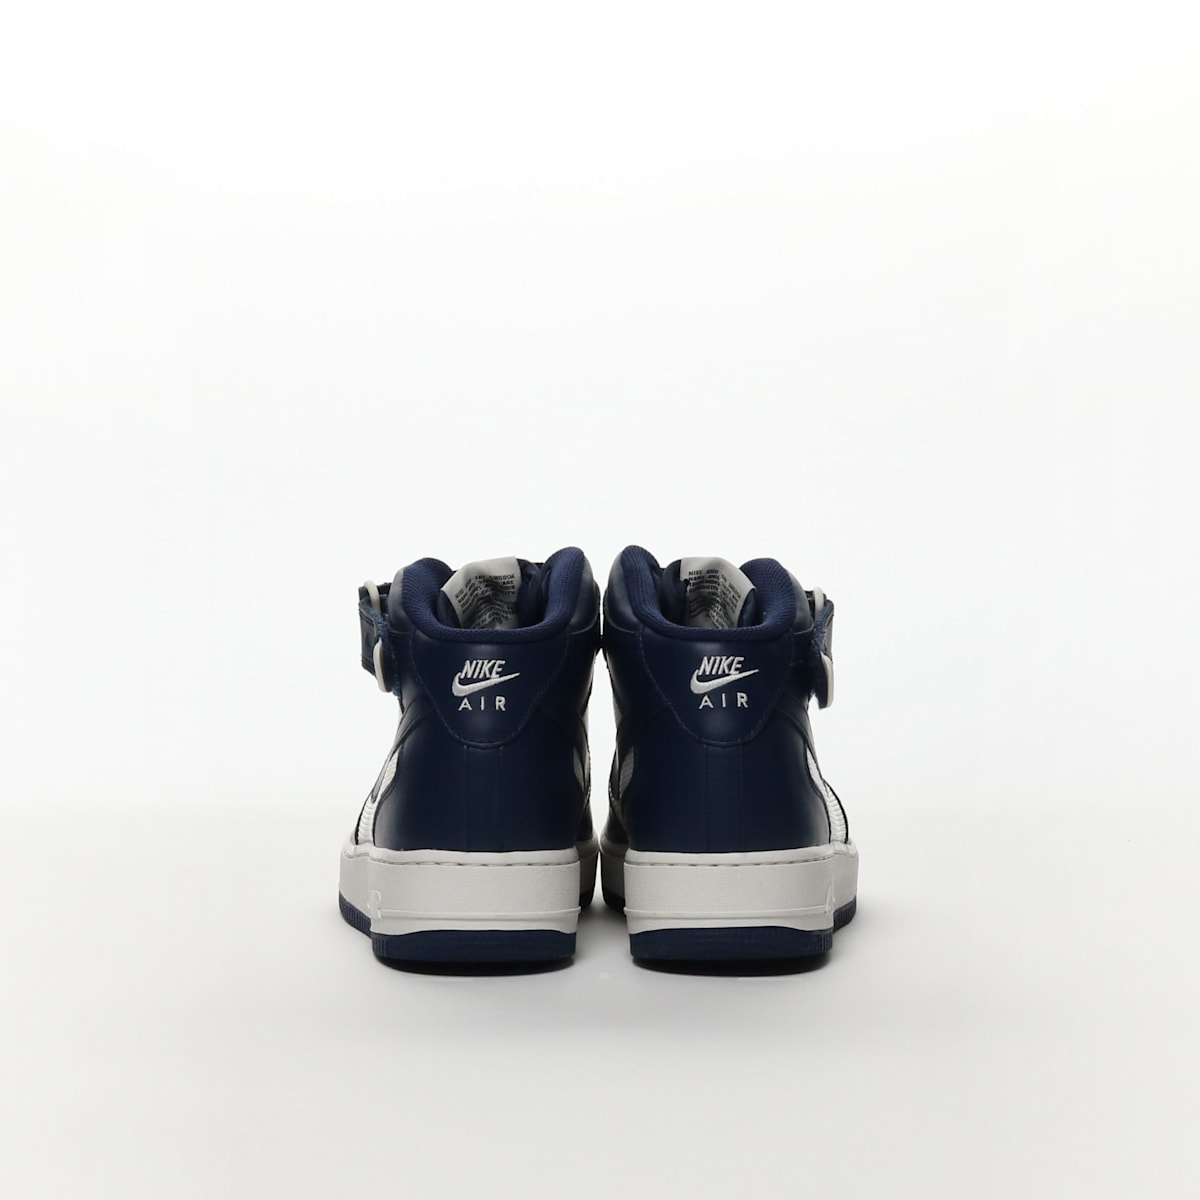 reputable site 10a76 0e4bc ... Nike air force 1 mid 07.  Actual Shoe